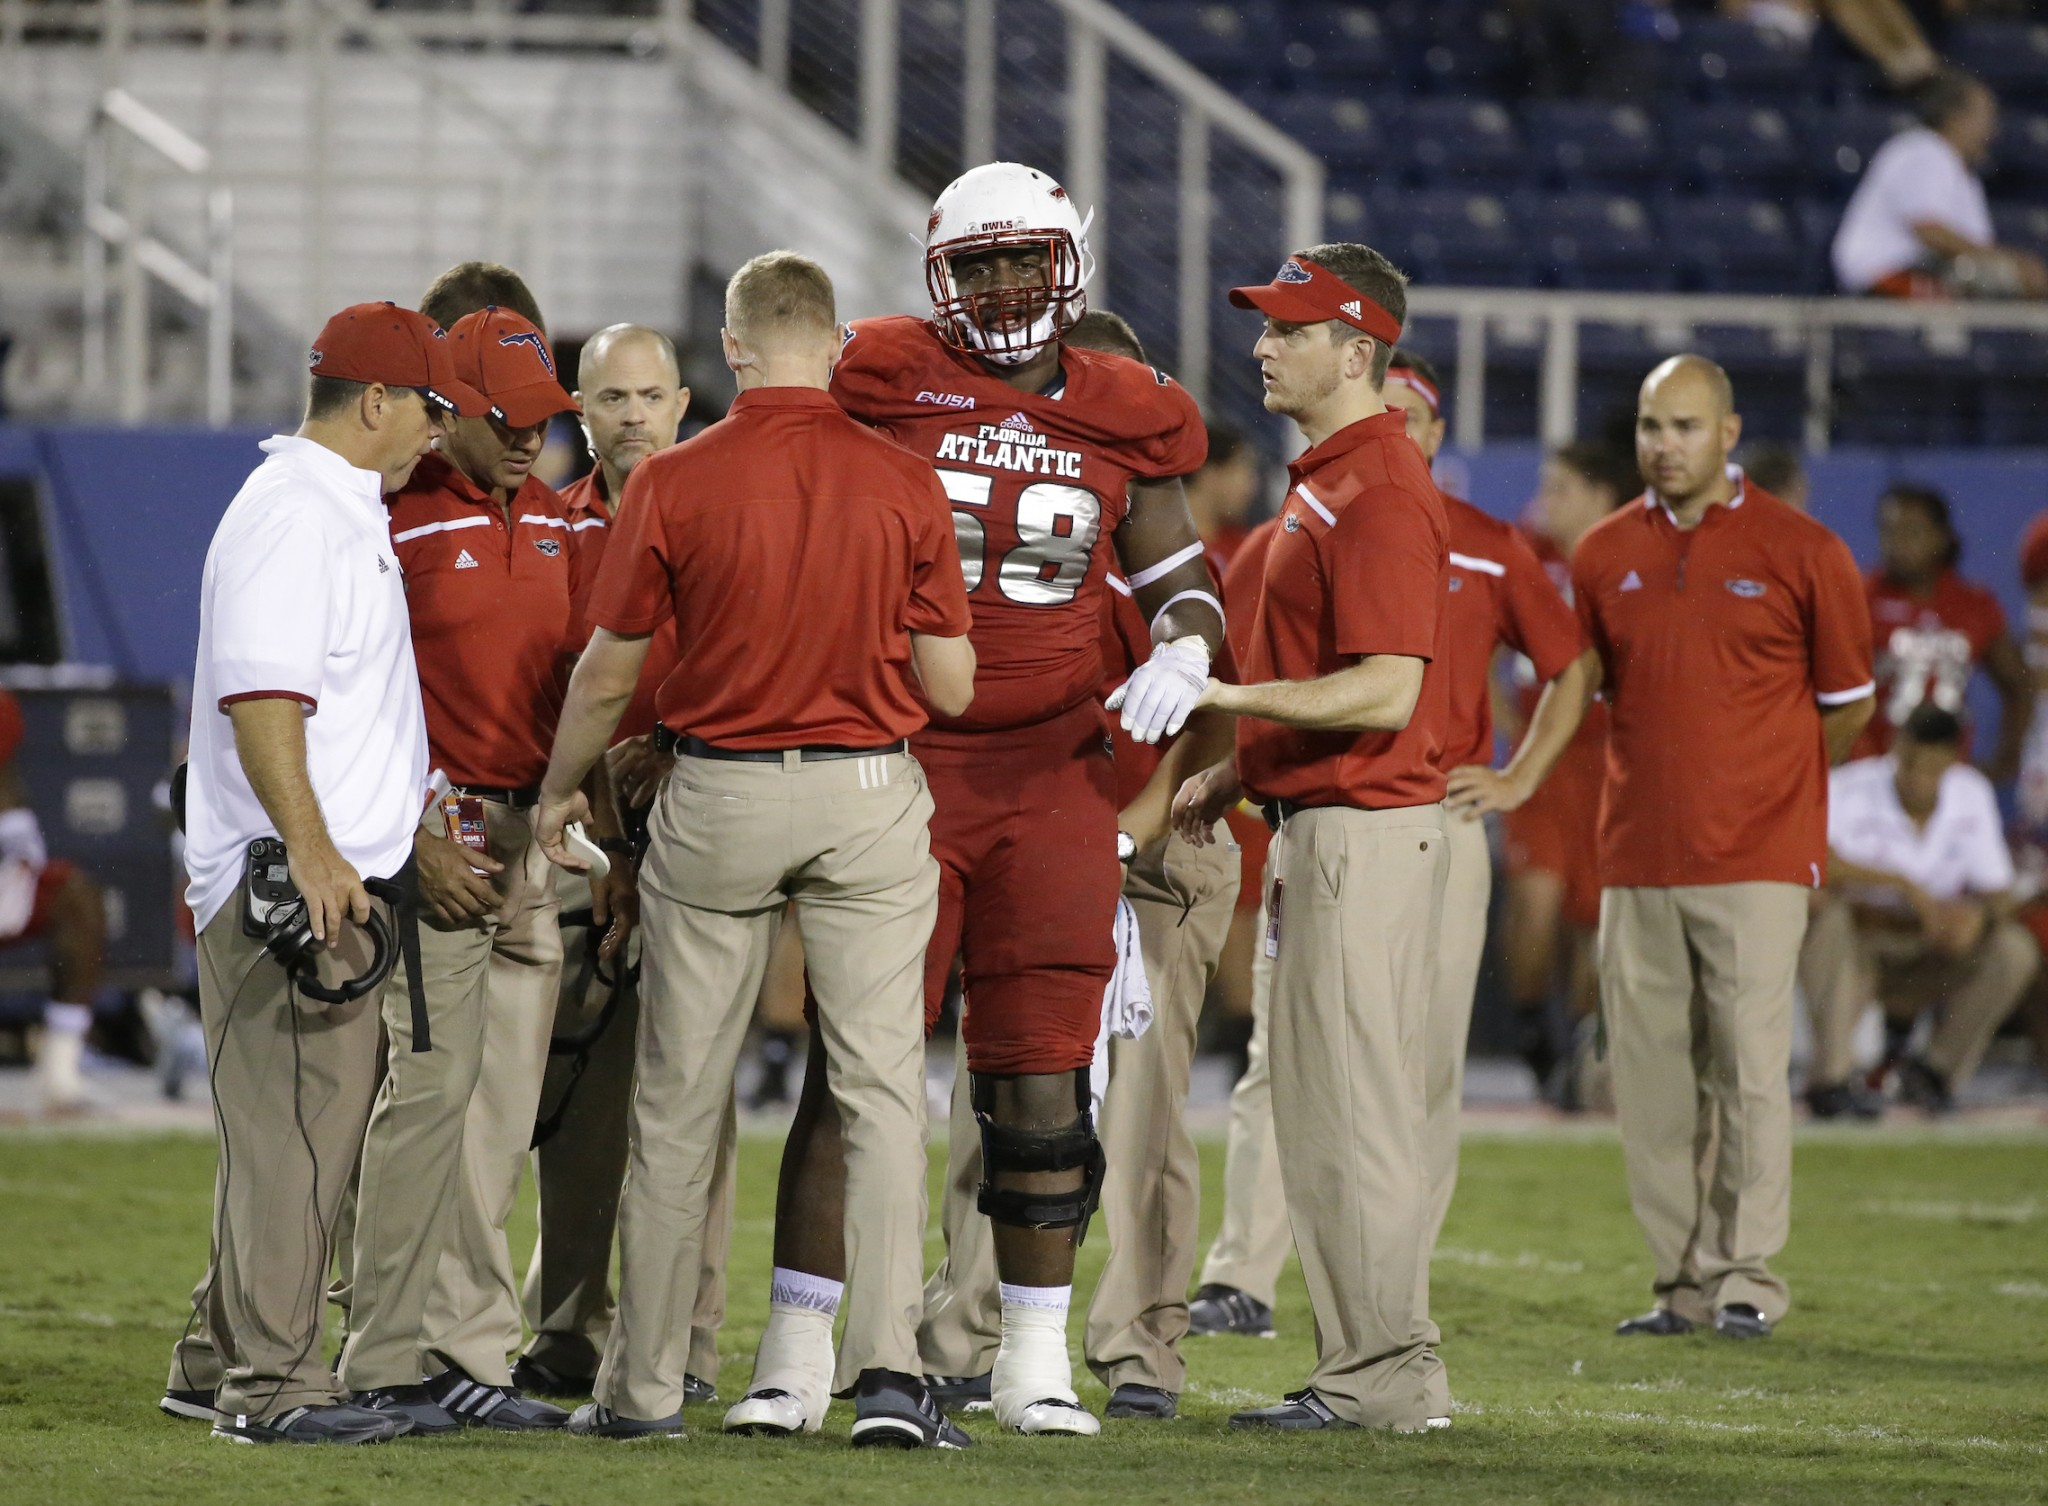 Florida Atlantic offensive lineman Reggie Bain is helped off the field during the second half of an NCAA college football game against Miami, in the early morning hours of, Saturday, Sept. 12, 2015, in Boca Raton, Fla. (AP Photo/Wilfredo Lee)